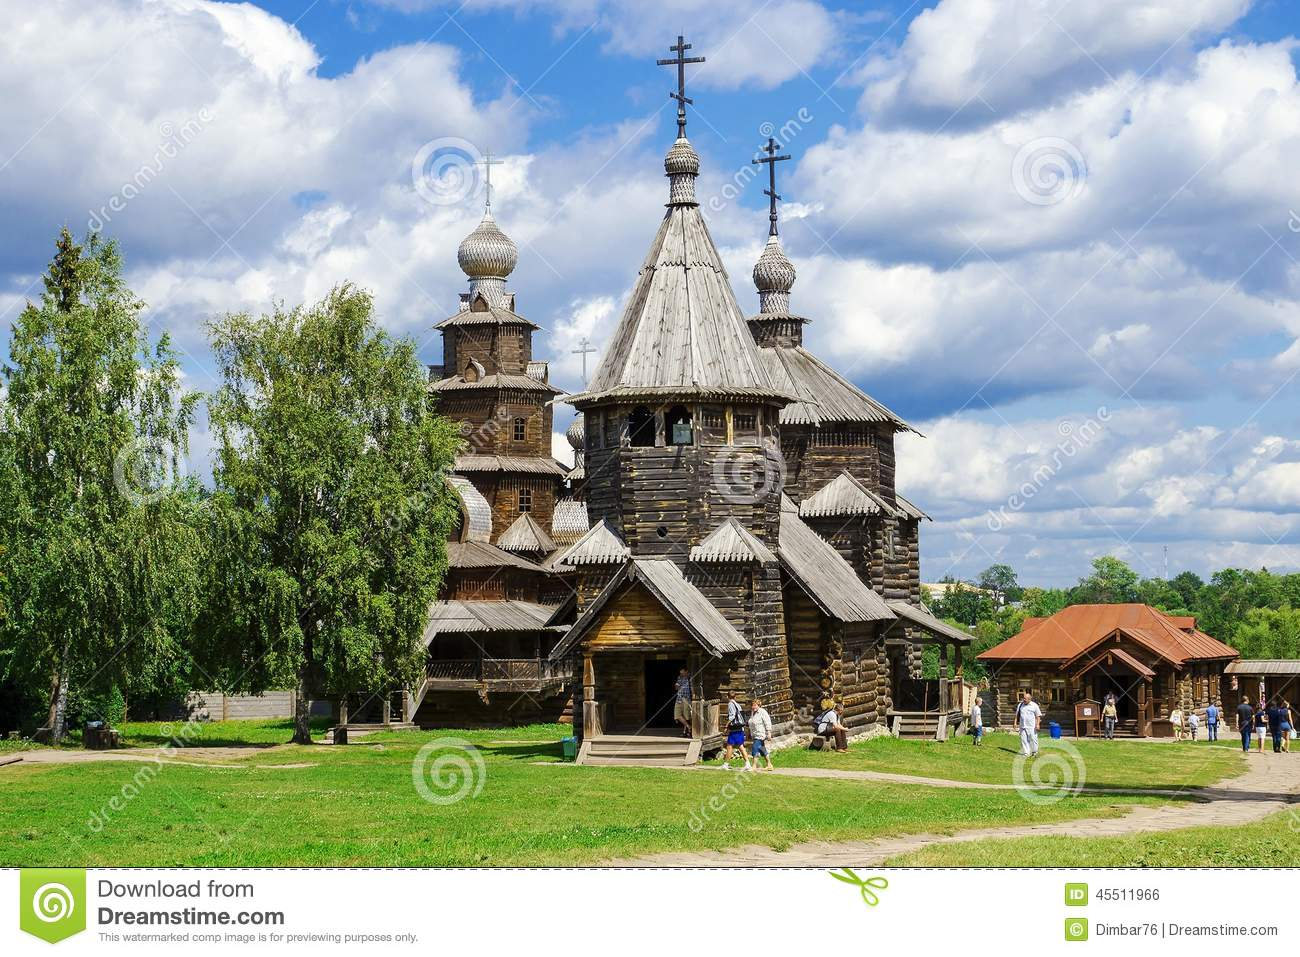 Suzdal - Museum of Wooden Architecture or the Ghost of the Dmitrievsky Pechora Monastery 11